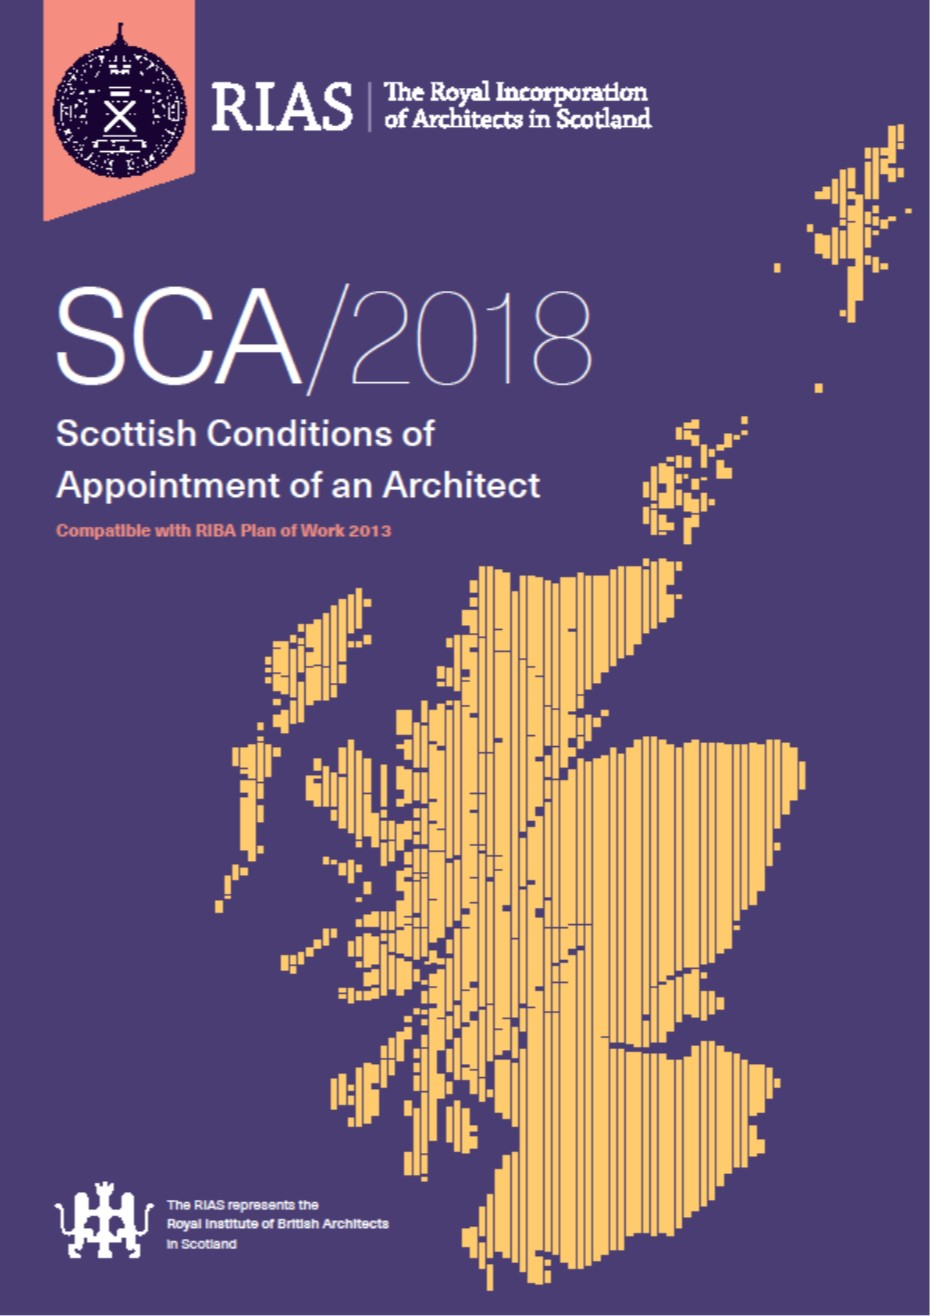 Scottish Conditions of Appointment of an Architect SCA/2018